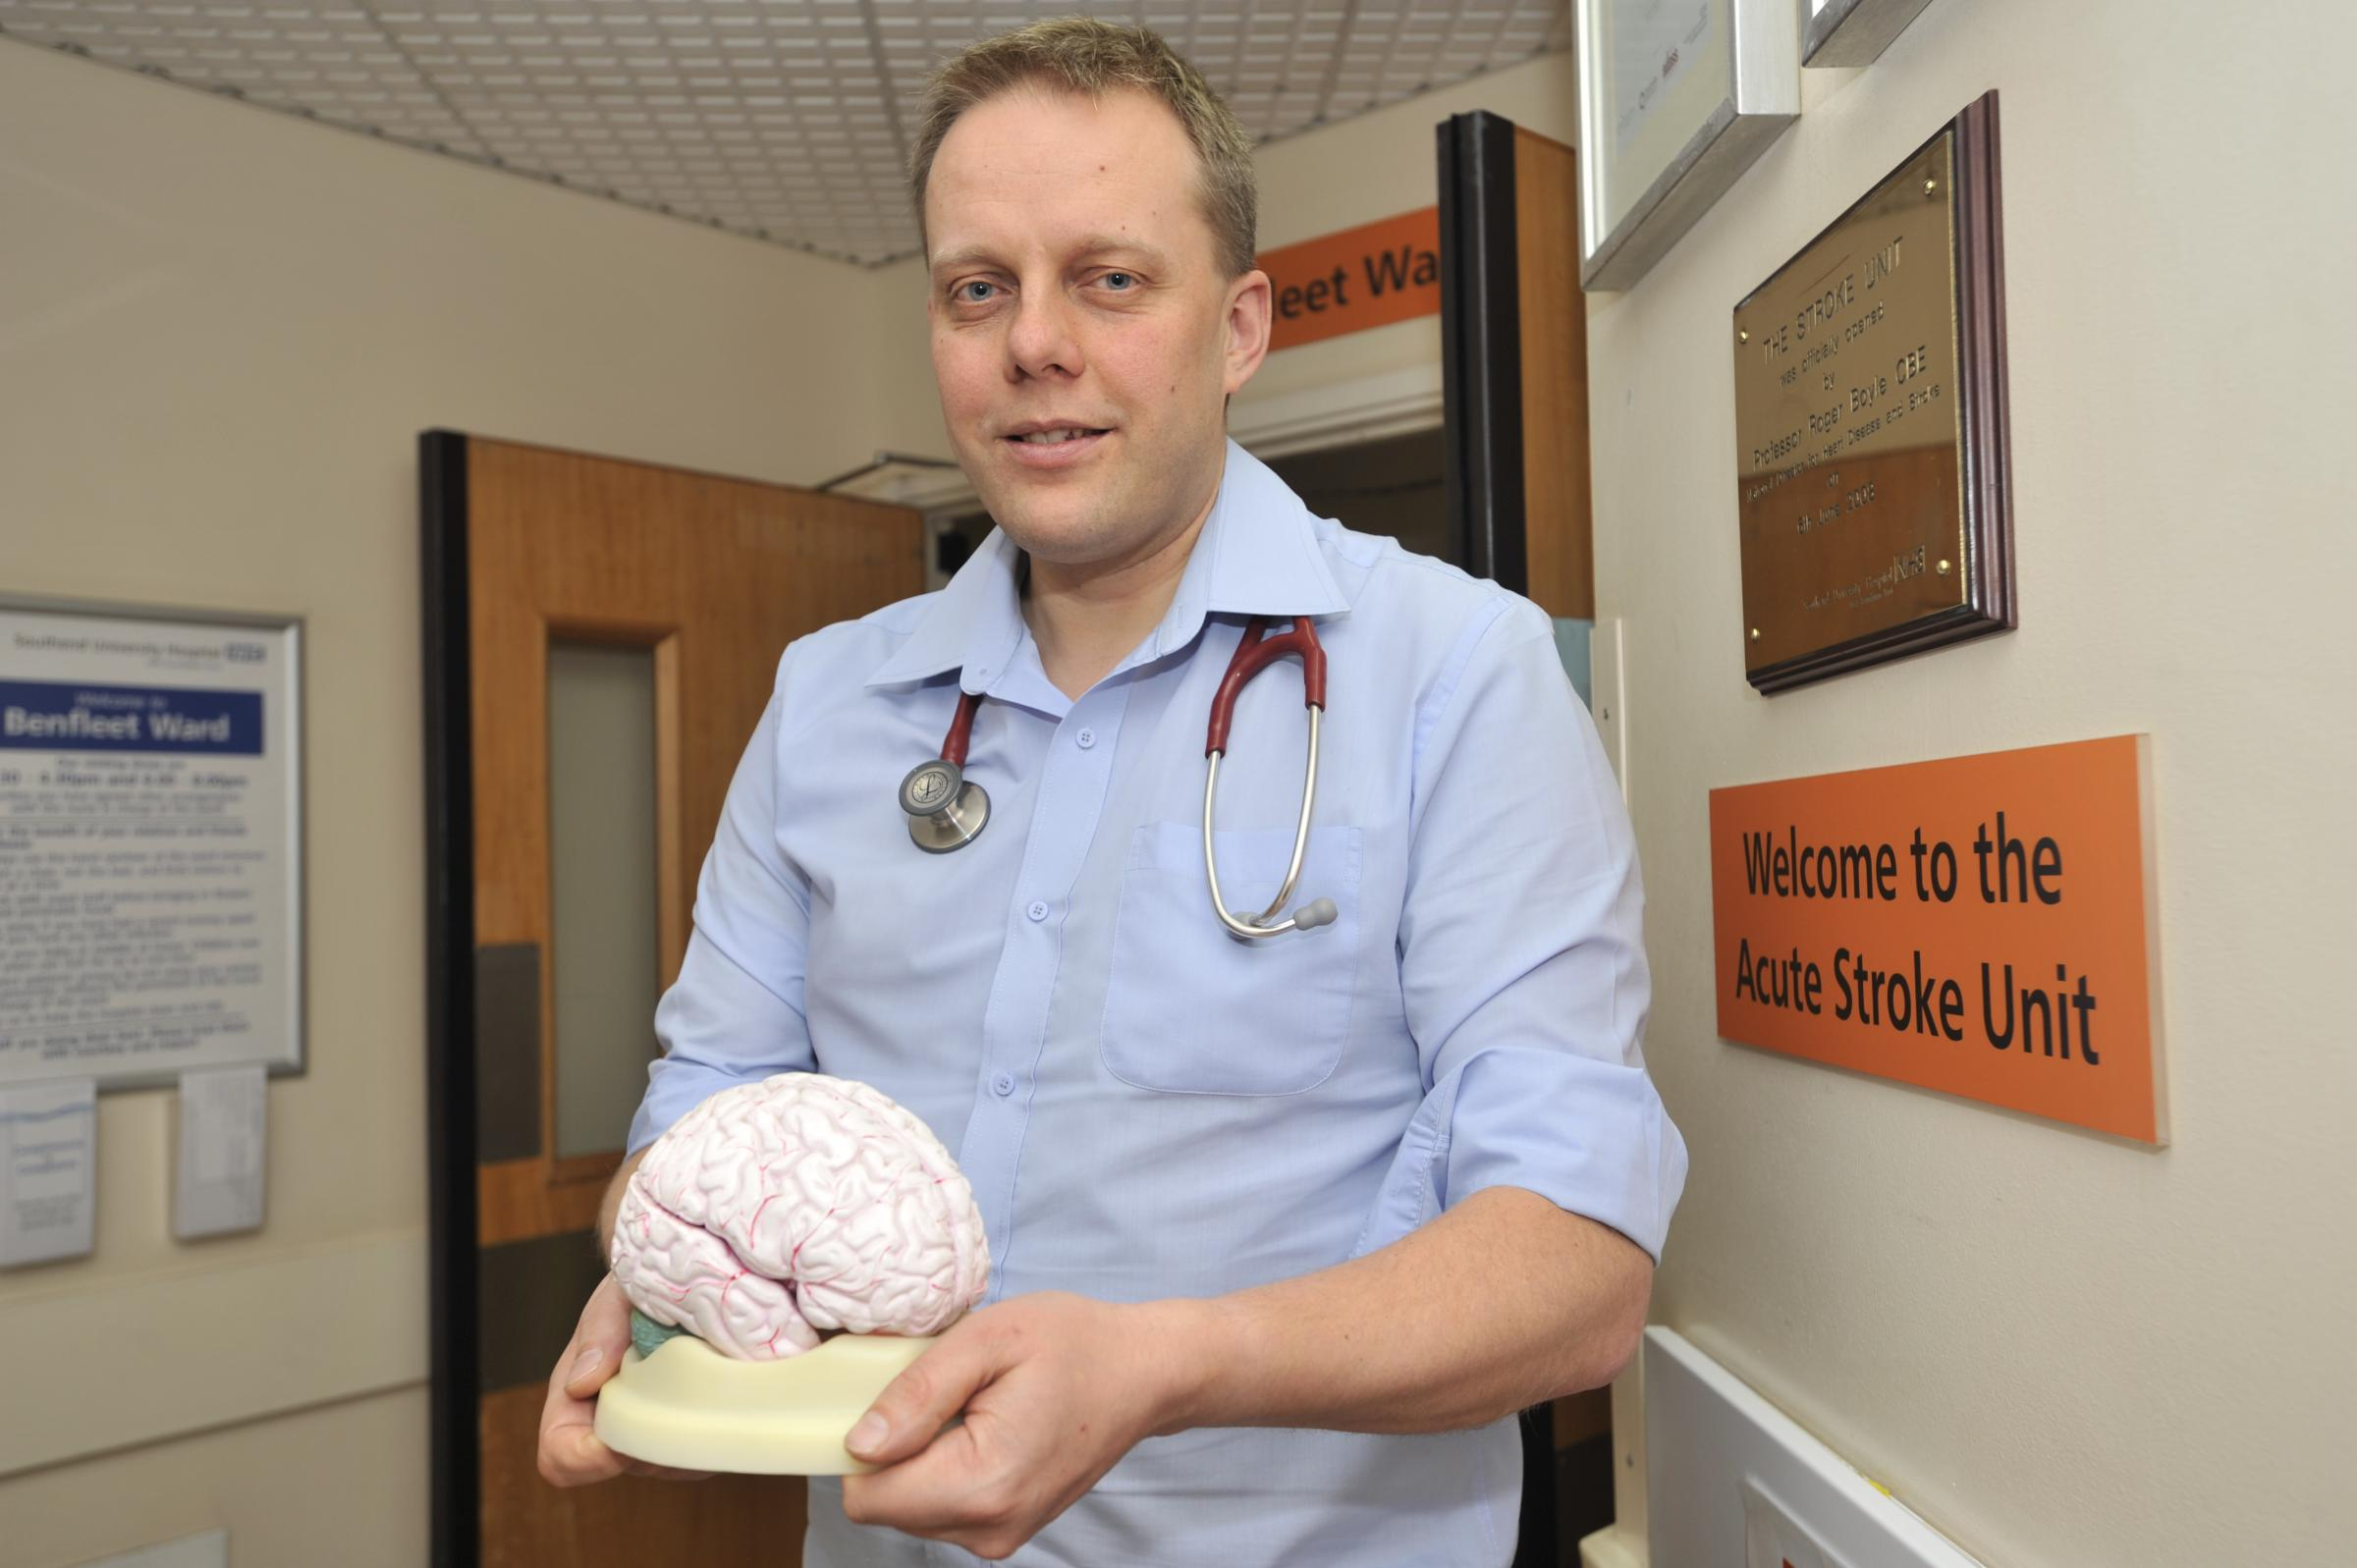 Southend stroke specialist - Dr Paul Guyler says a single super-unit in Southend would be best for patients from all over Essex